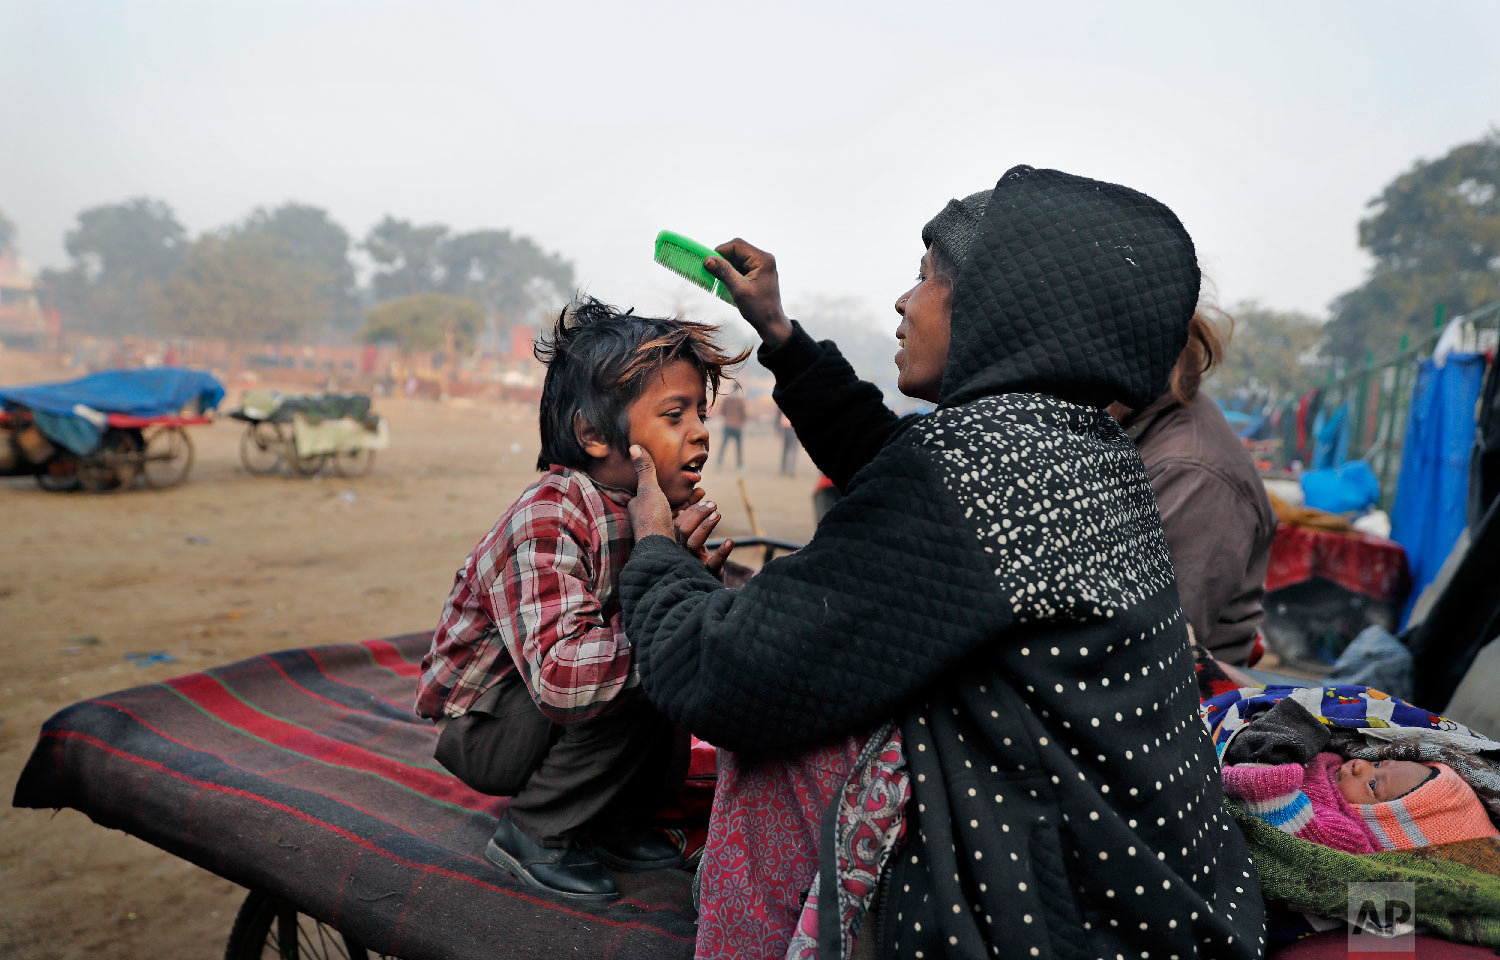 Ruby Khan helps her 7-year-old son Farmaan get ready for school in New Delhi, India on In this Jan. 18, 2019. (AP Photo/Altaf Qadri)